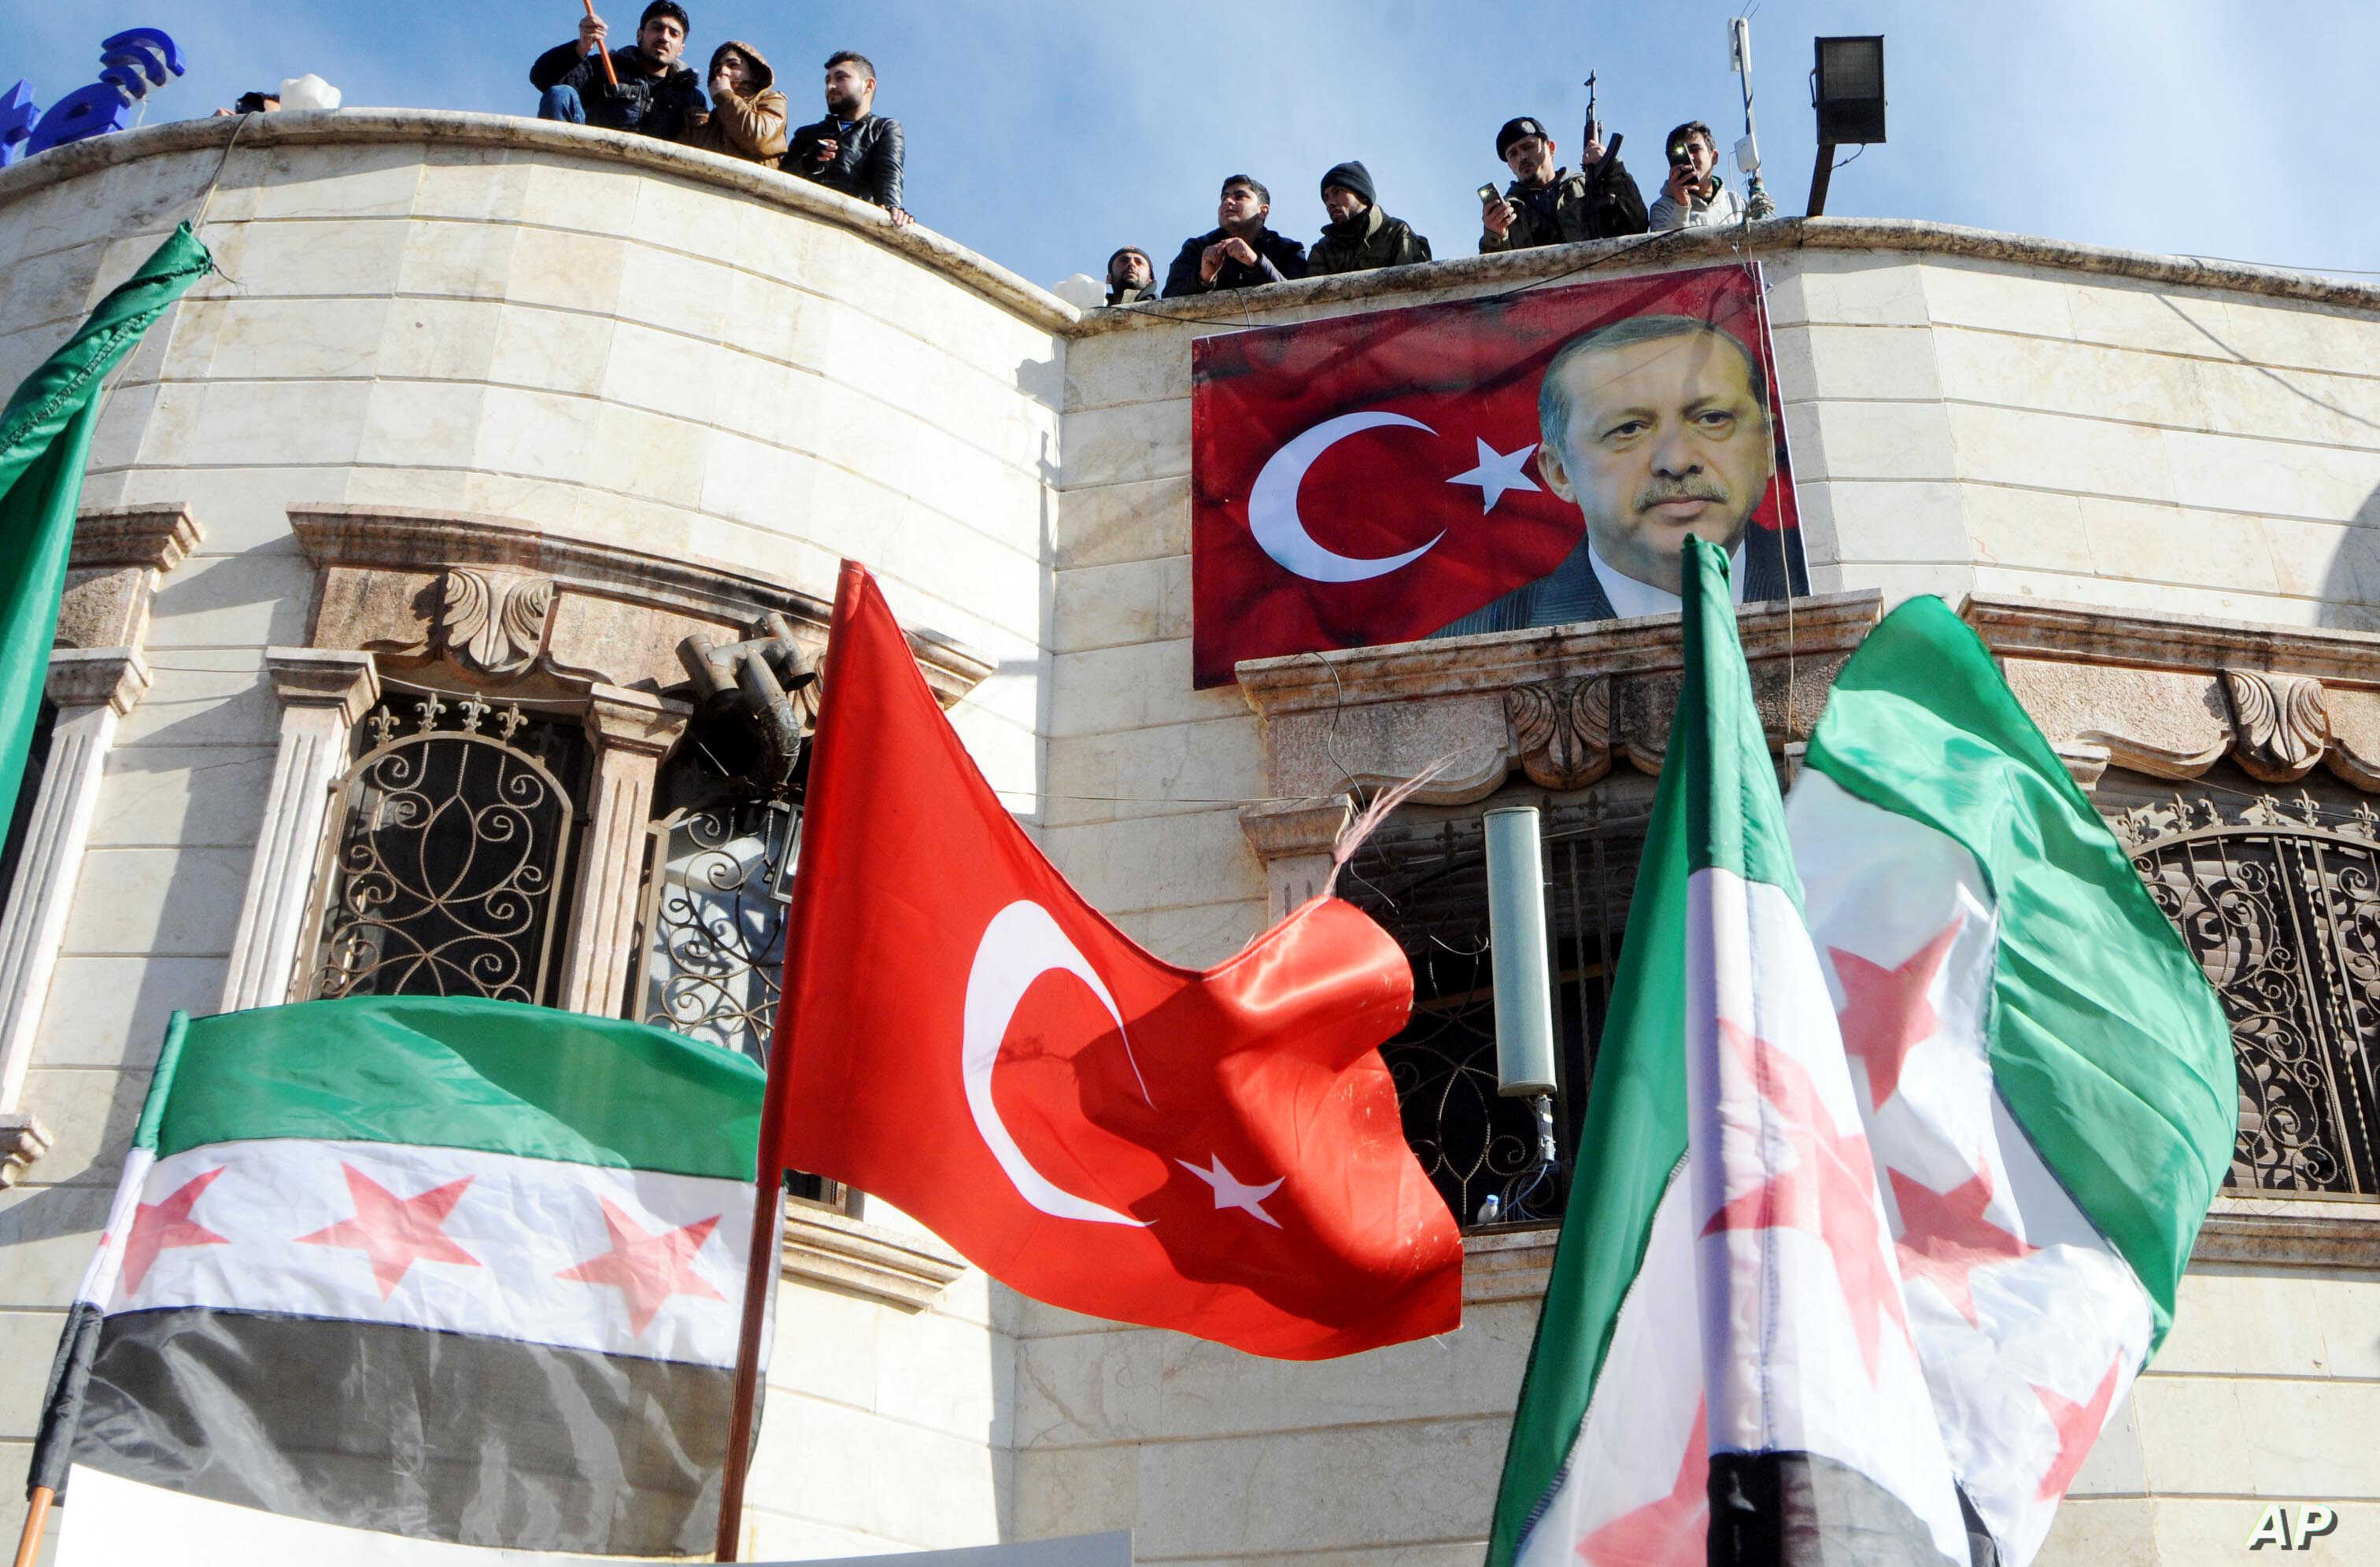 Turkey-backed Free Syrian Army, FSA, fighters stand on the roof of a building with a poster of Turkey's President Recep Tayyip Erdogan hanging on it in the Syrian town of Azez near the border with Turkey, Jan. 19, 2018.